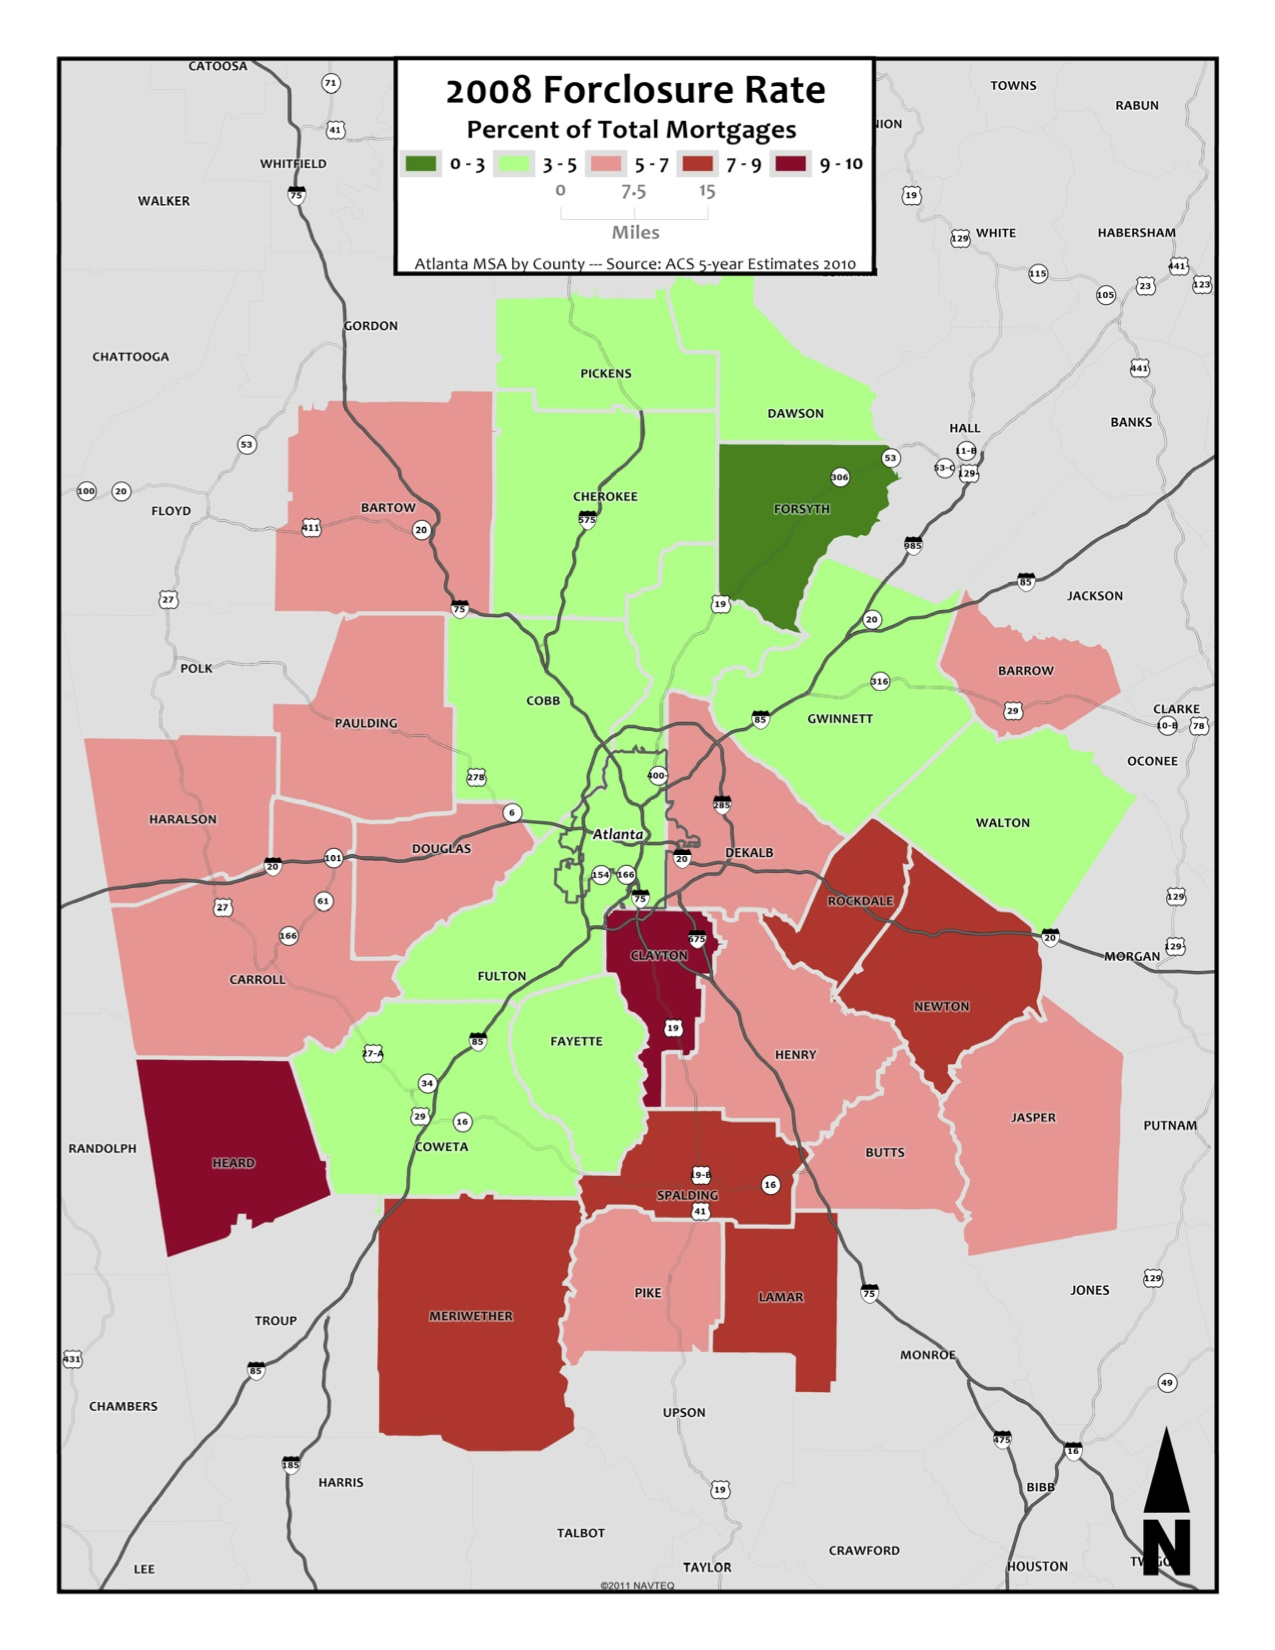 2008 Home Forclosure Rate – metro counties